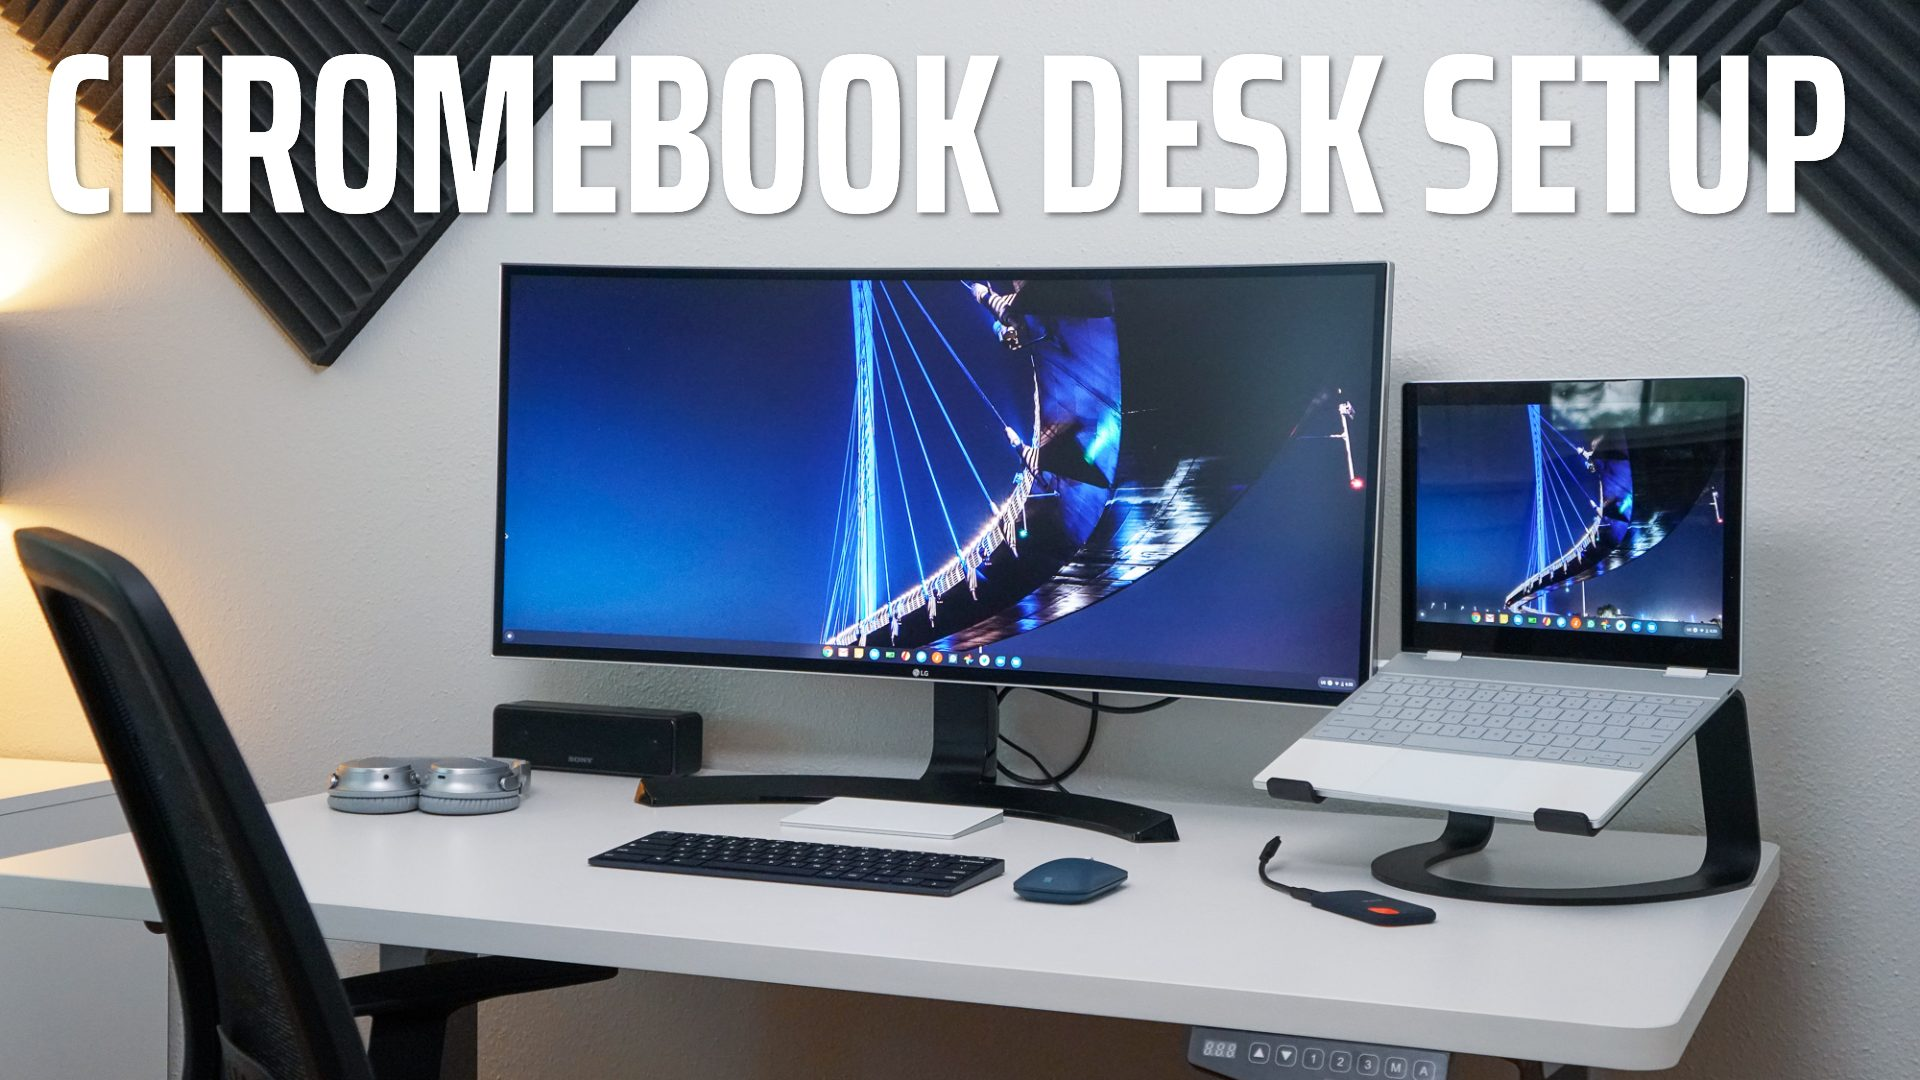 The Clean, Minimal Chromebook Desk Setup